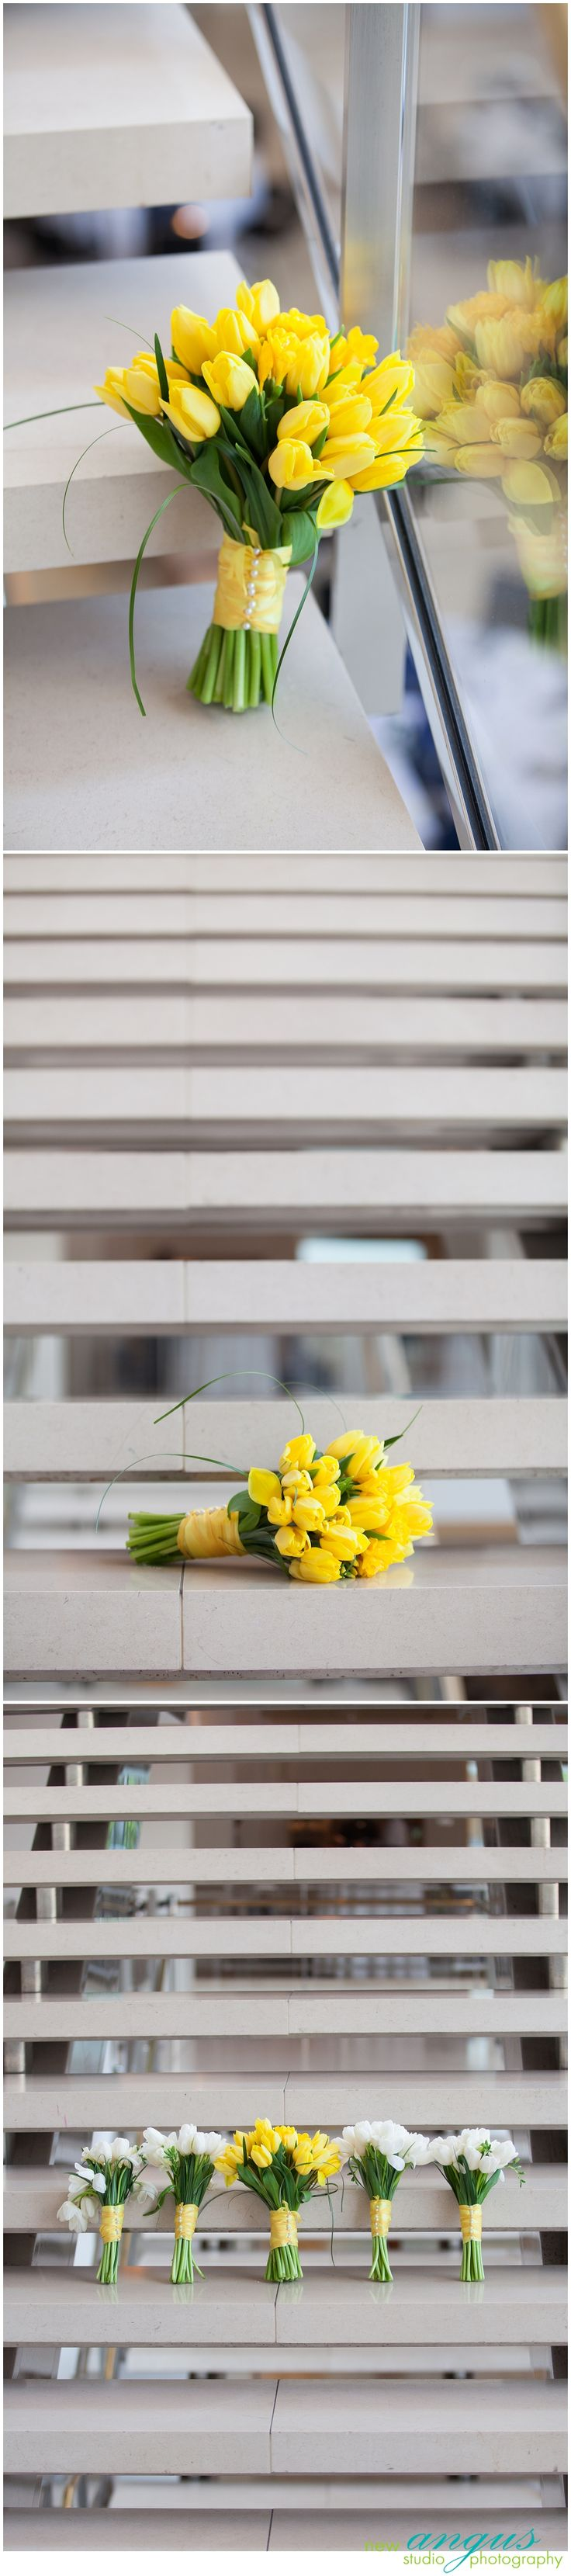 #Yellow Tulip Bouquet   #Preppy #Wedding ... Wedding ideas for brides, grooms, parents & planners ... https://itunes.apple.com/us/app/the-gold-wedding-planner/id498112599?ls=1=8 … plus how to organise an entire wedding, without overspending ♥ The Gold Wedding Planner iPhone App ♥